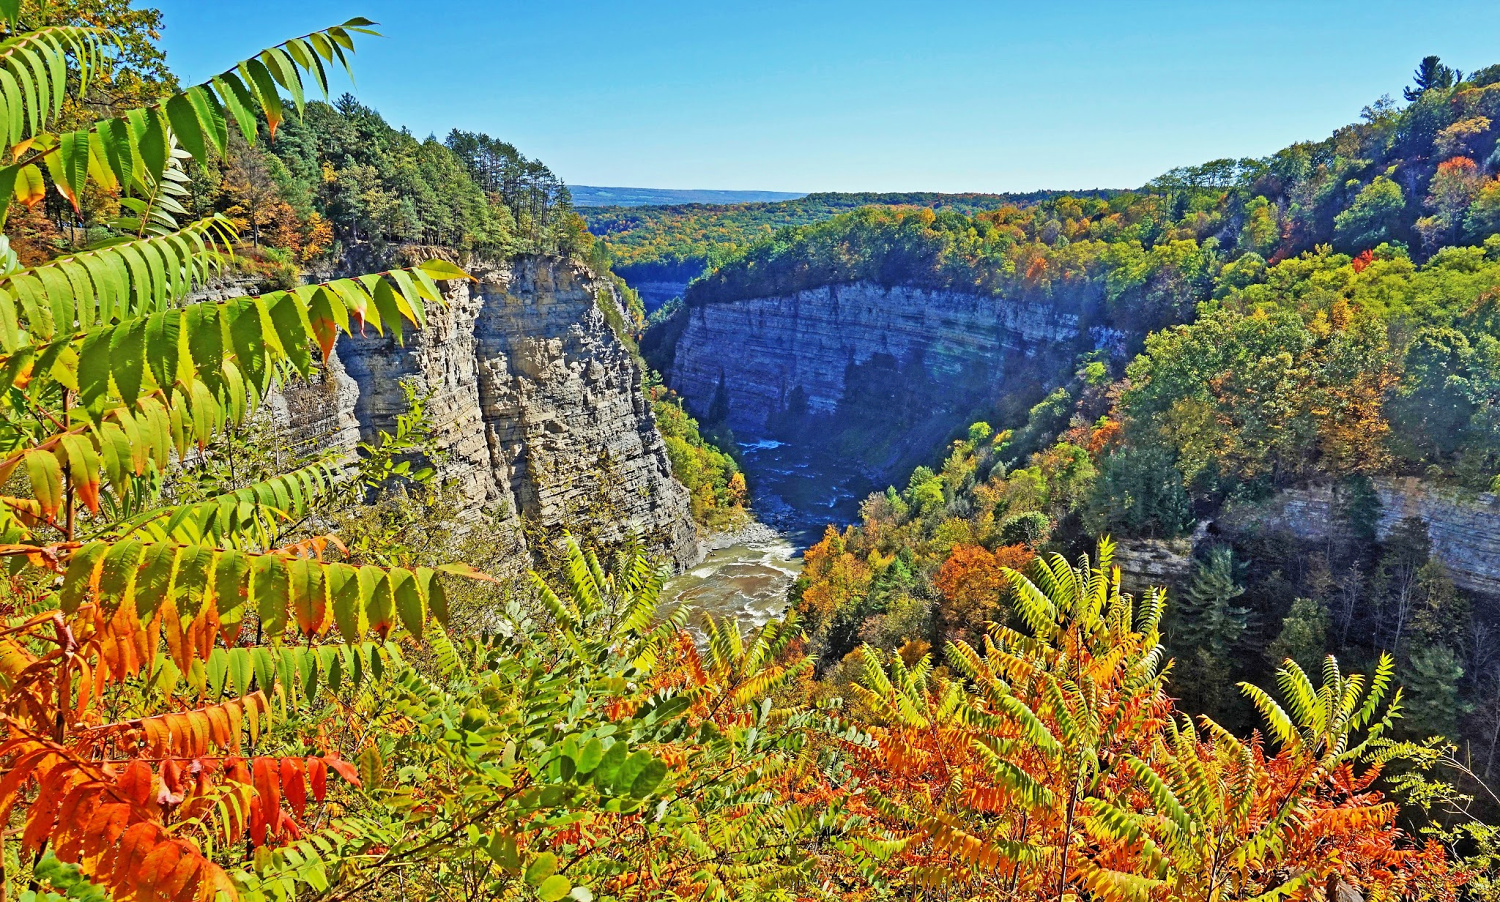 Beautiful foliage at Letchworth State Park.